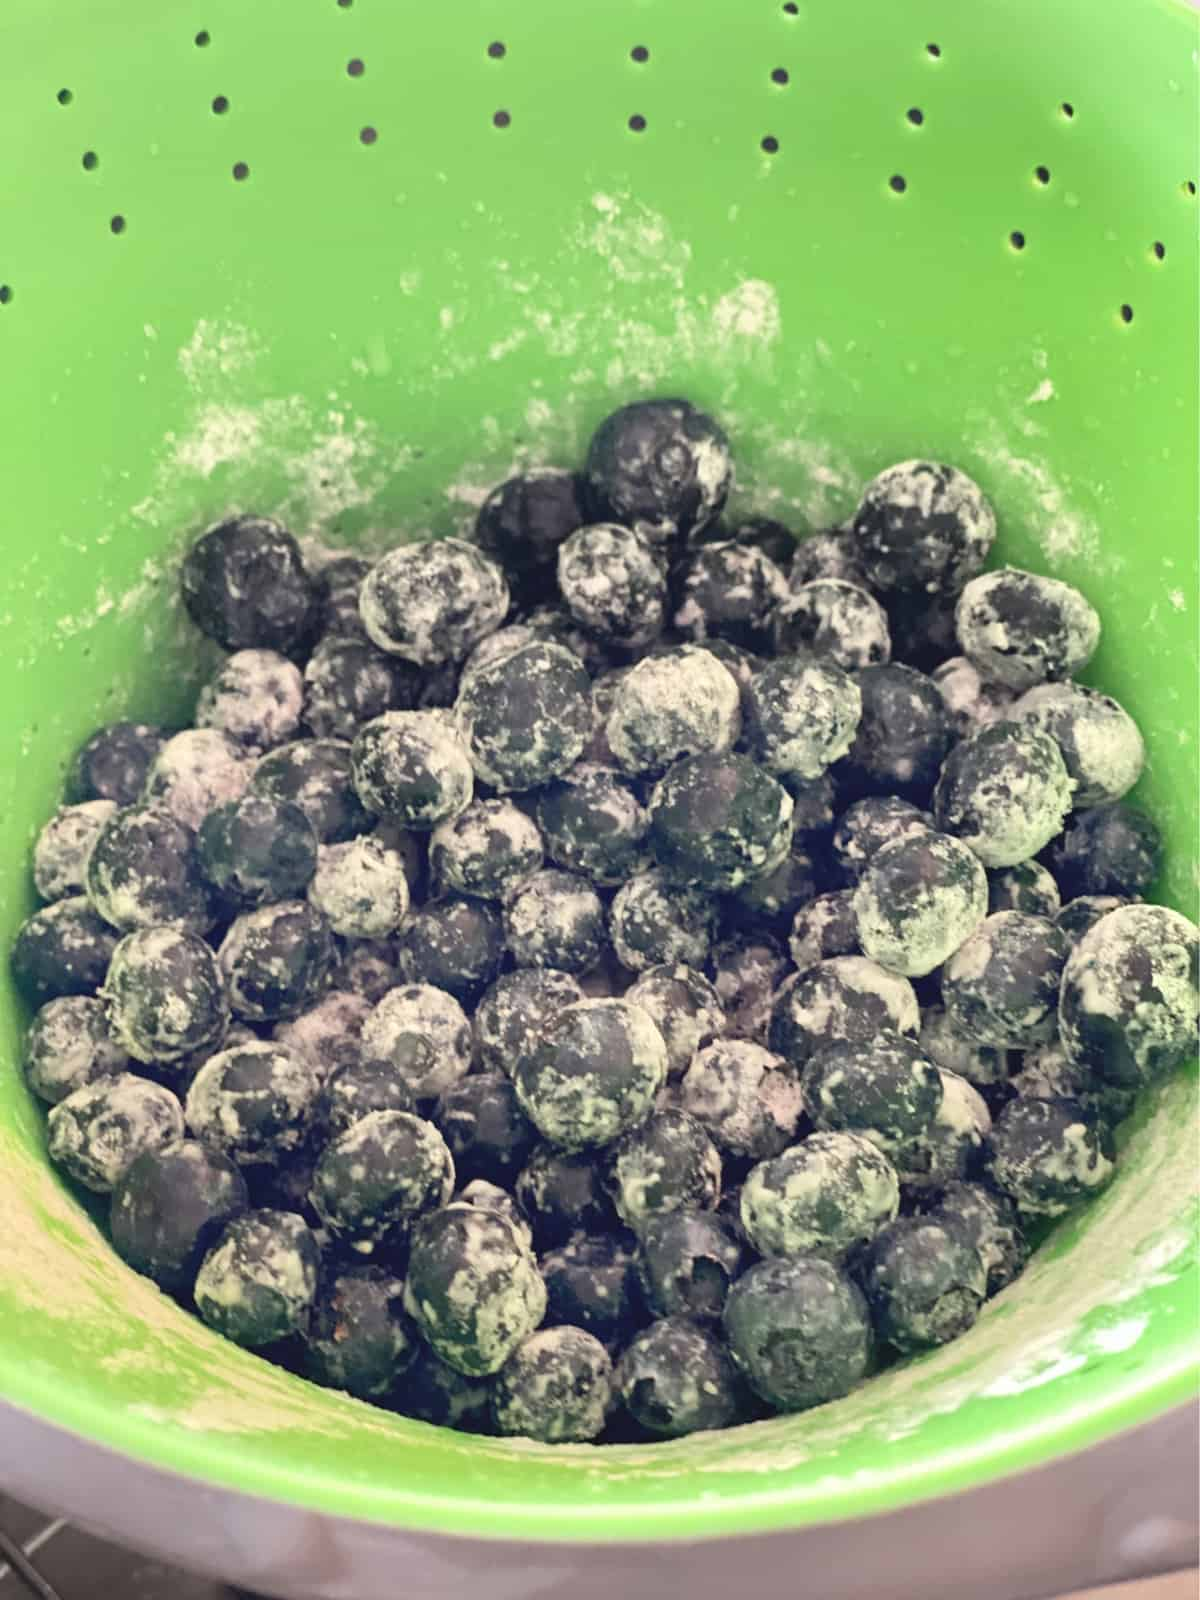 Floured blueberries in a neon green colander.